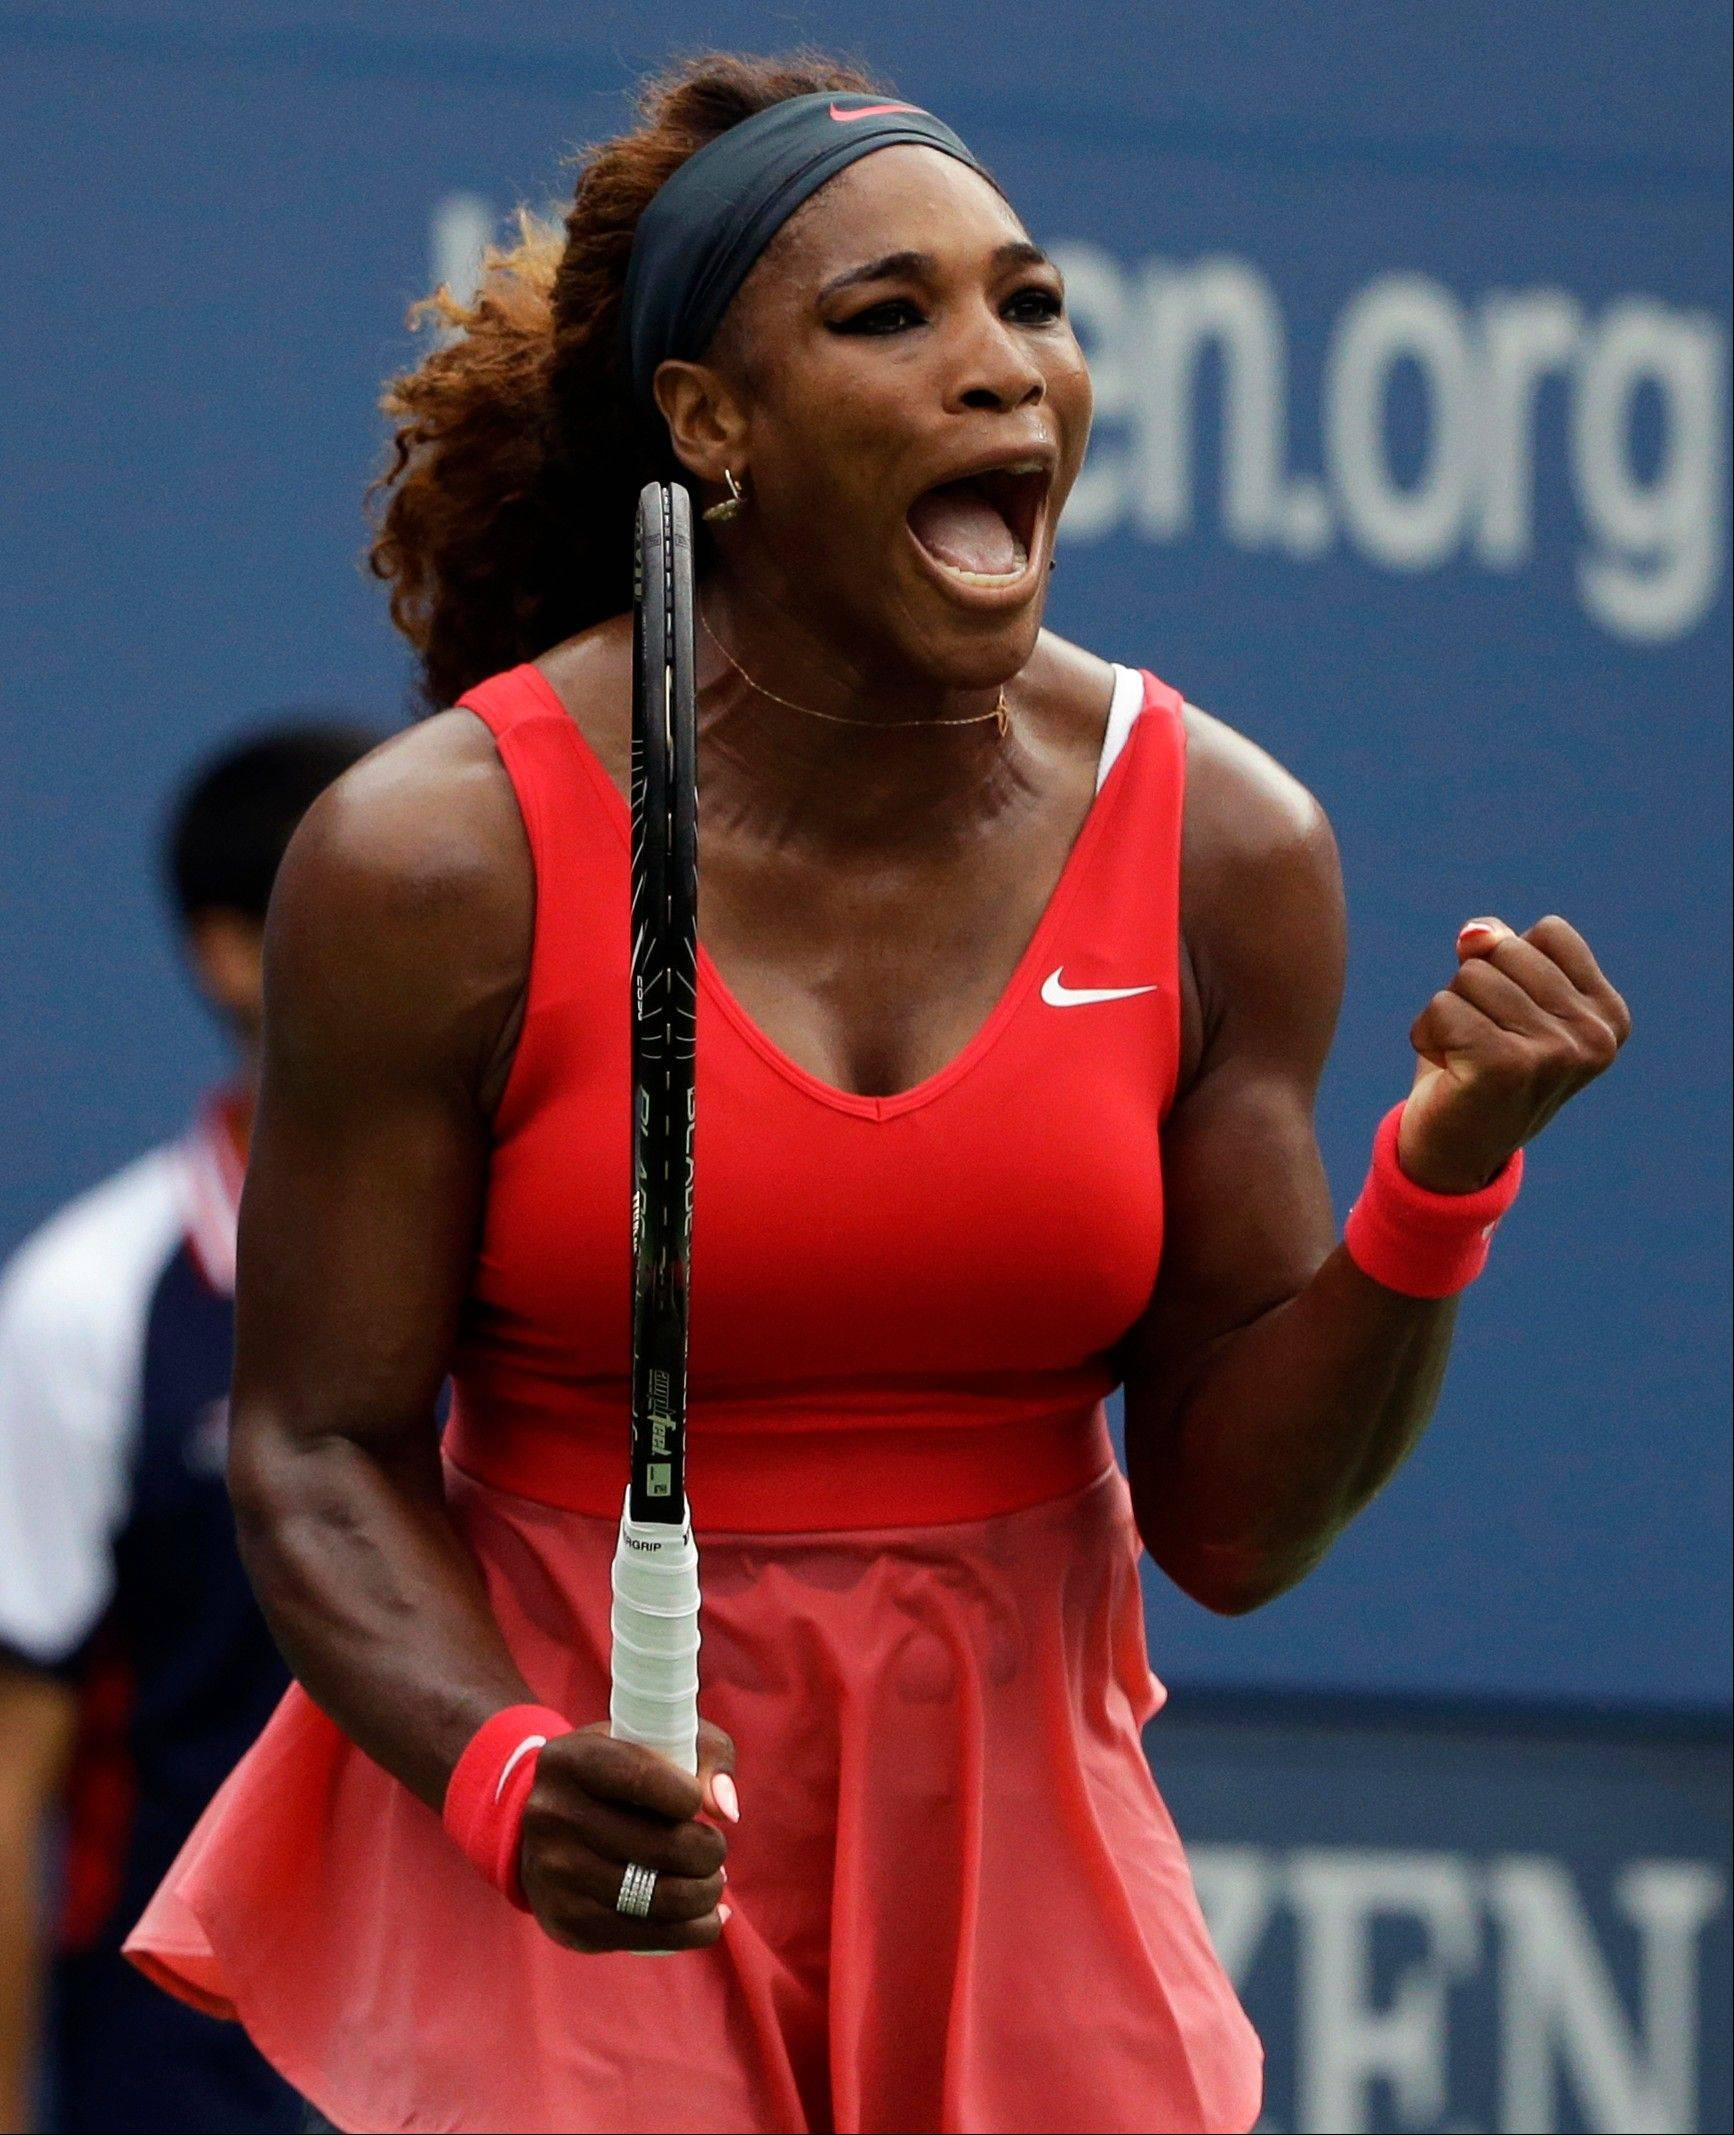 Serena Williams reacts after a point against Sloane Stephens during the fourth round of the 2013 U.S. Open tennis tournament, Sunday, Sept. 1, 2013, in New York. (AP Photo/David Goldman)